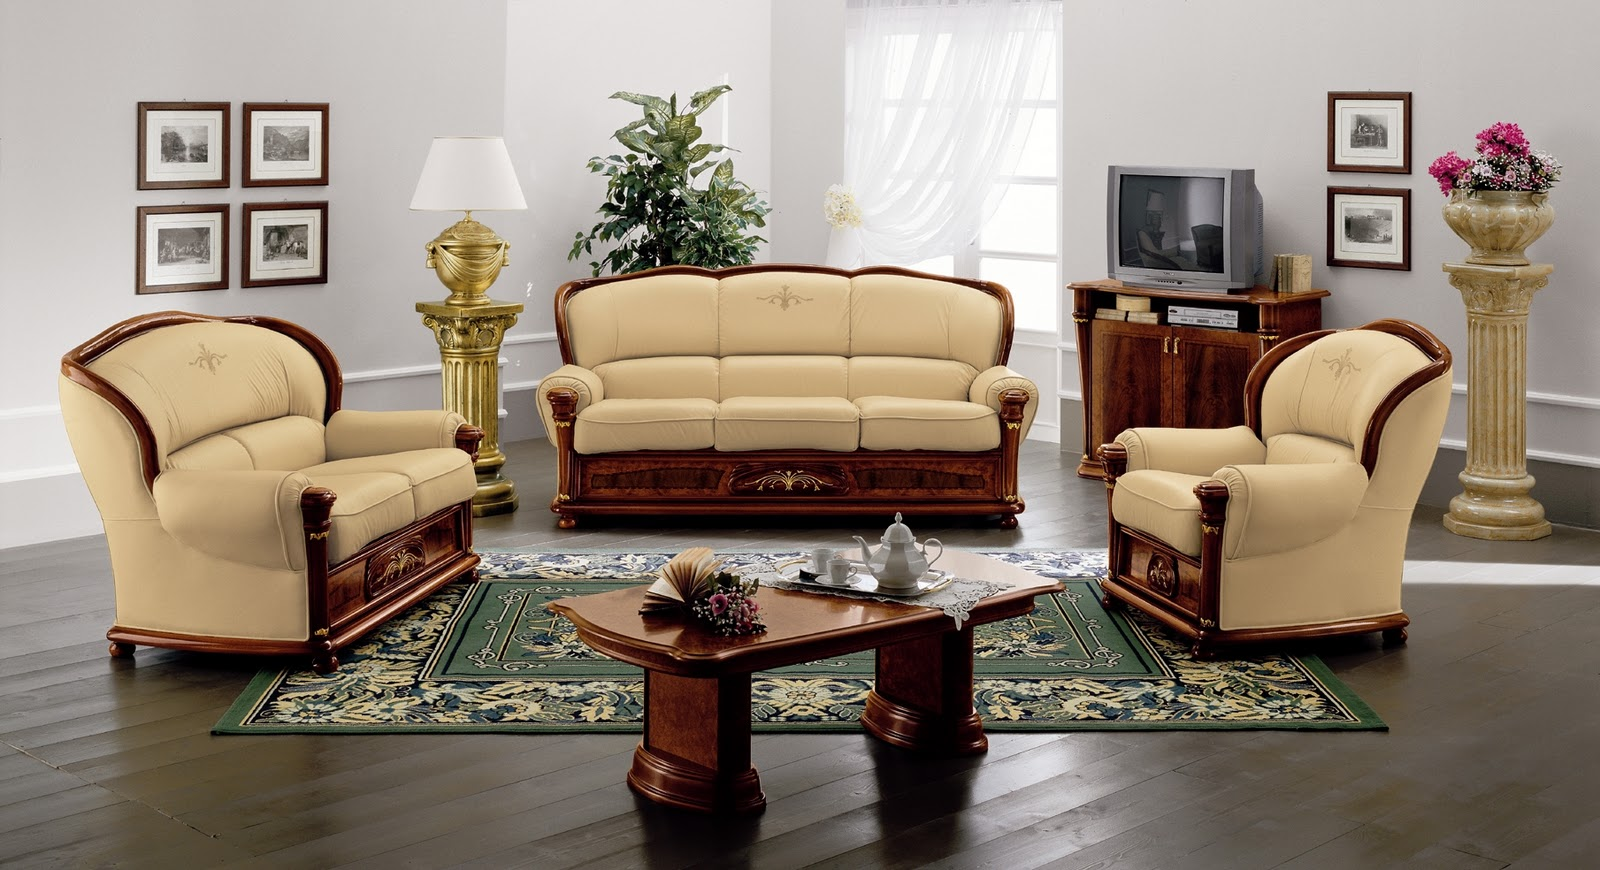 Living room sofa design photos living room interior designs for Couch designs for living room